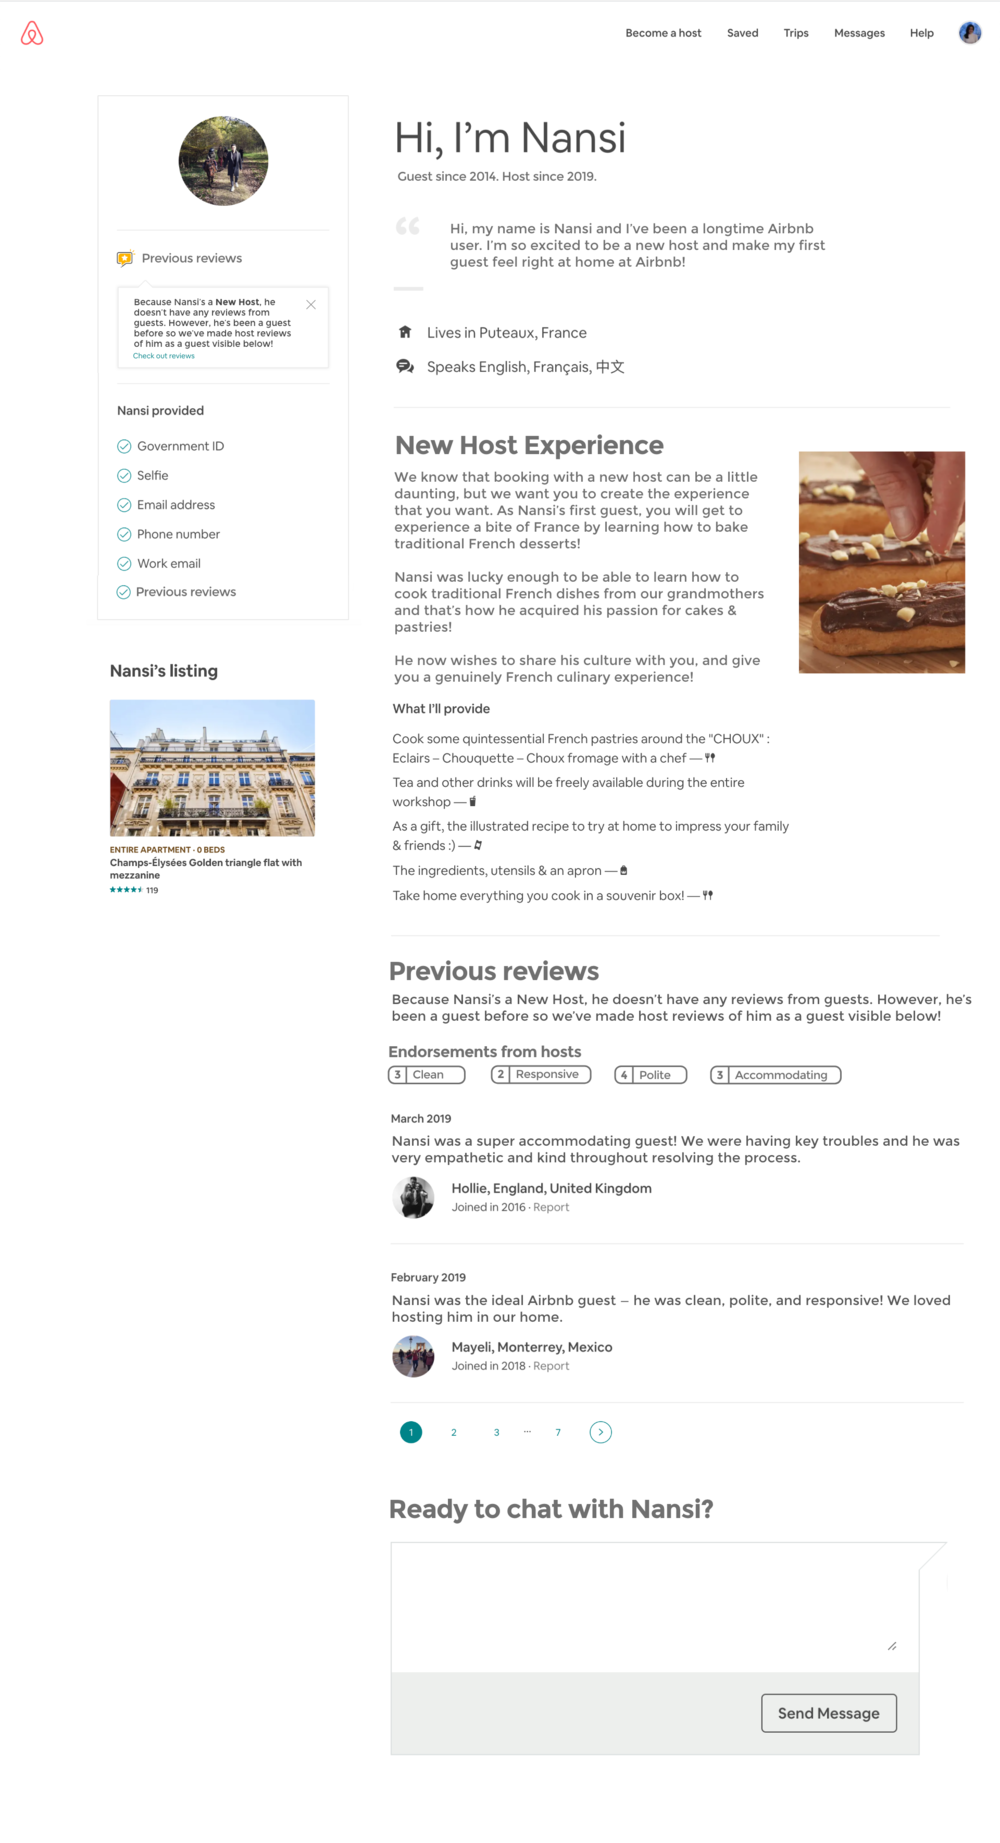 The redesigned new host profile.